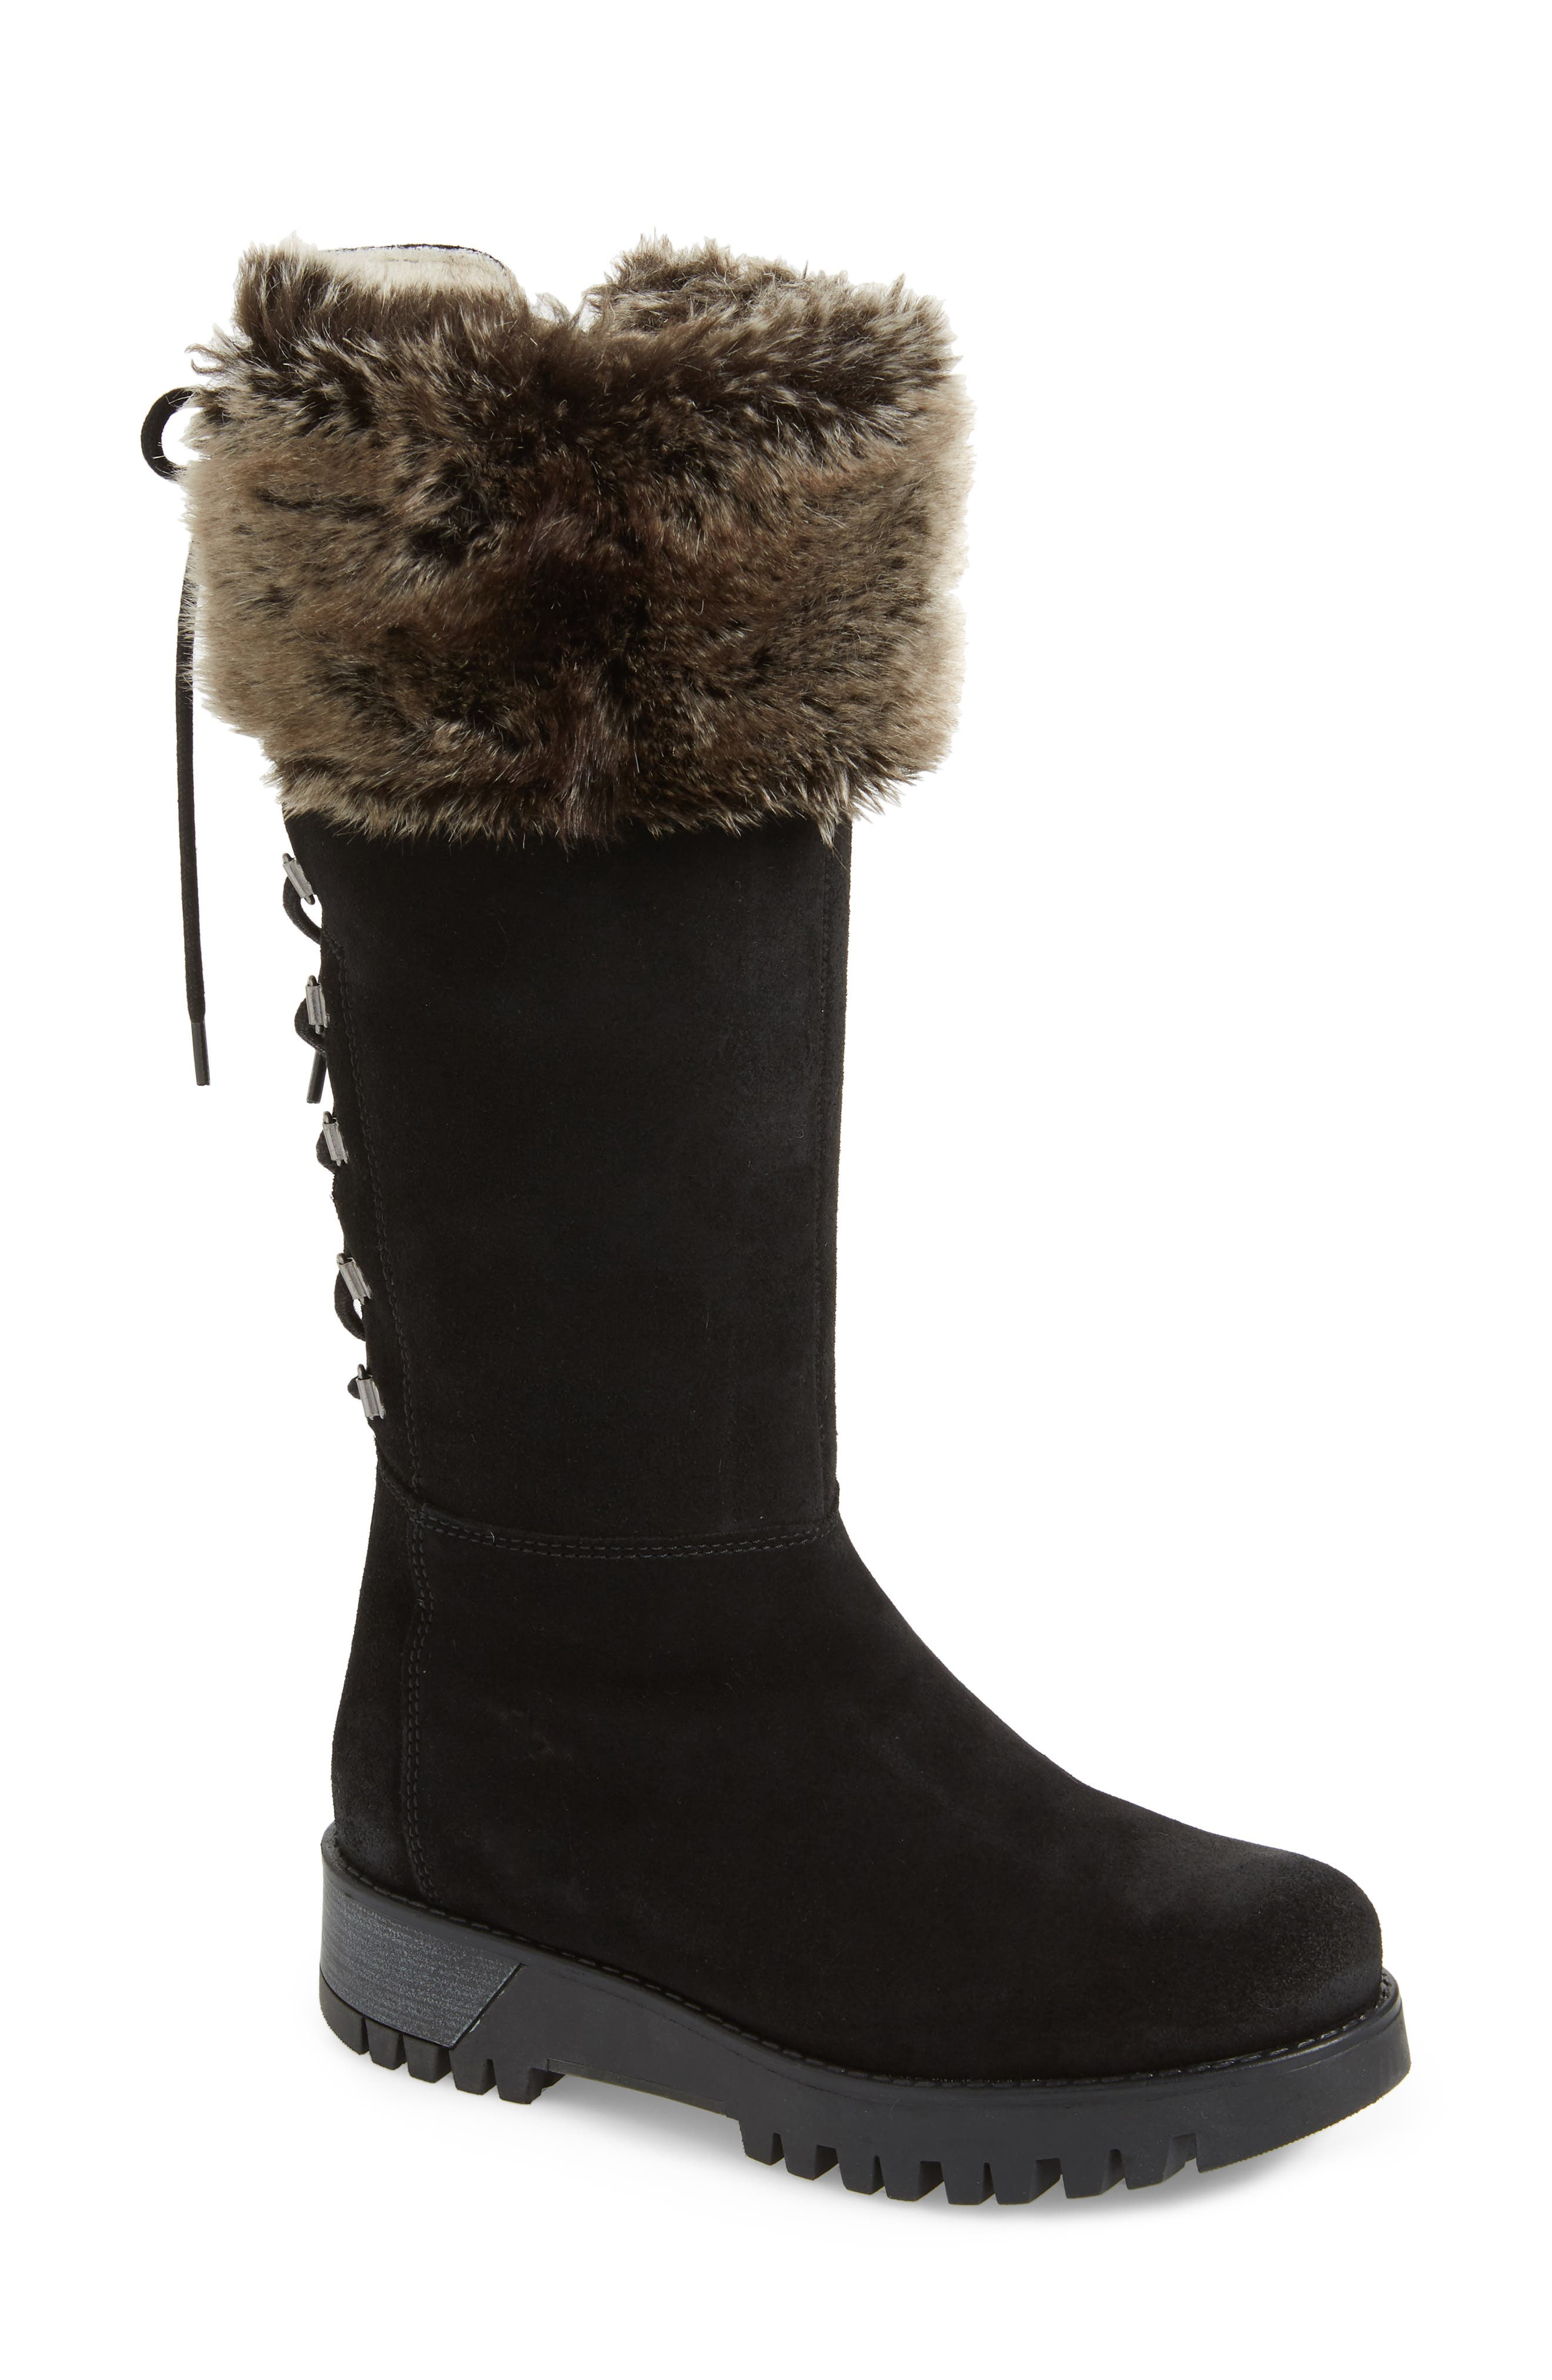 Graham Waterproof Winter Boot with Faux Fur Cuff,                             Main thumbnail 1, color,                             BLACK SUEDE